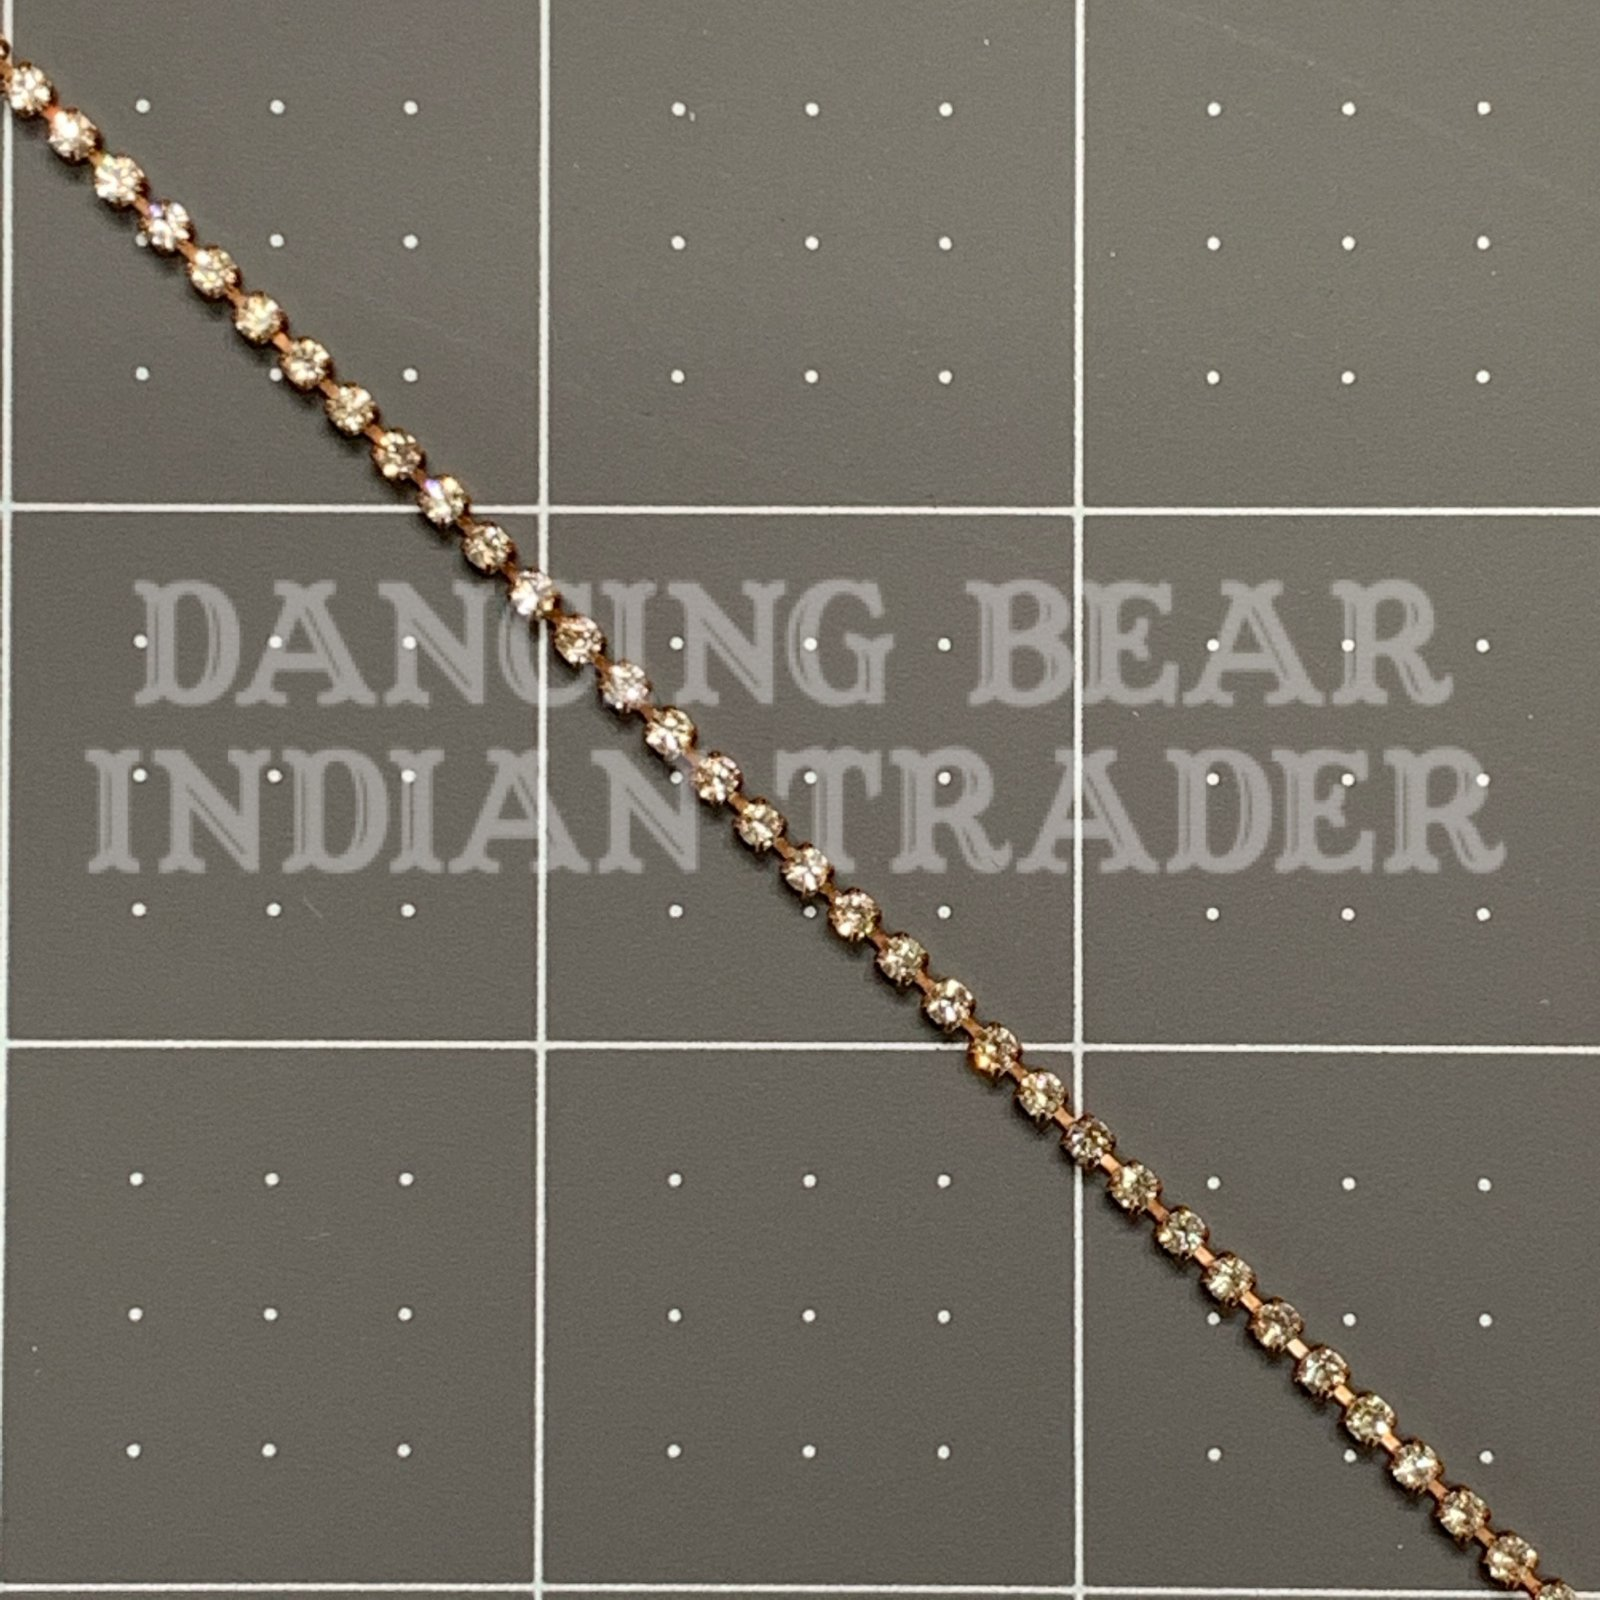 2mm Crystal Antique Copper Cup Chain per foot